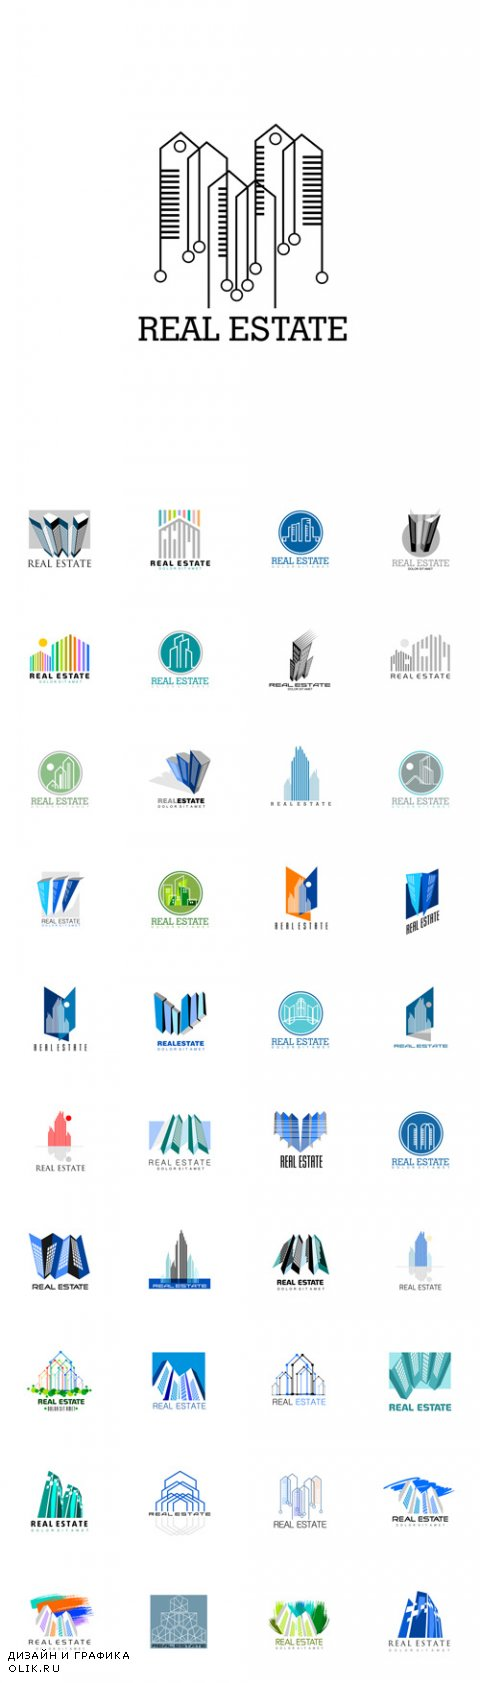 Vector Logo Templates Real Estate Clean Modern and Elegant Style Design